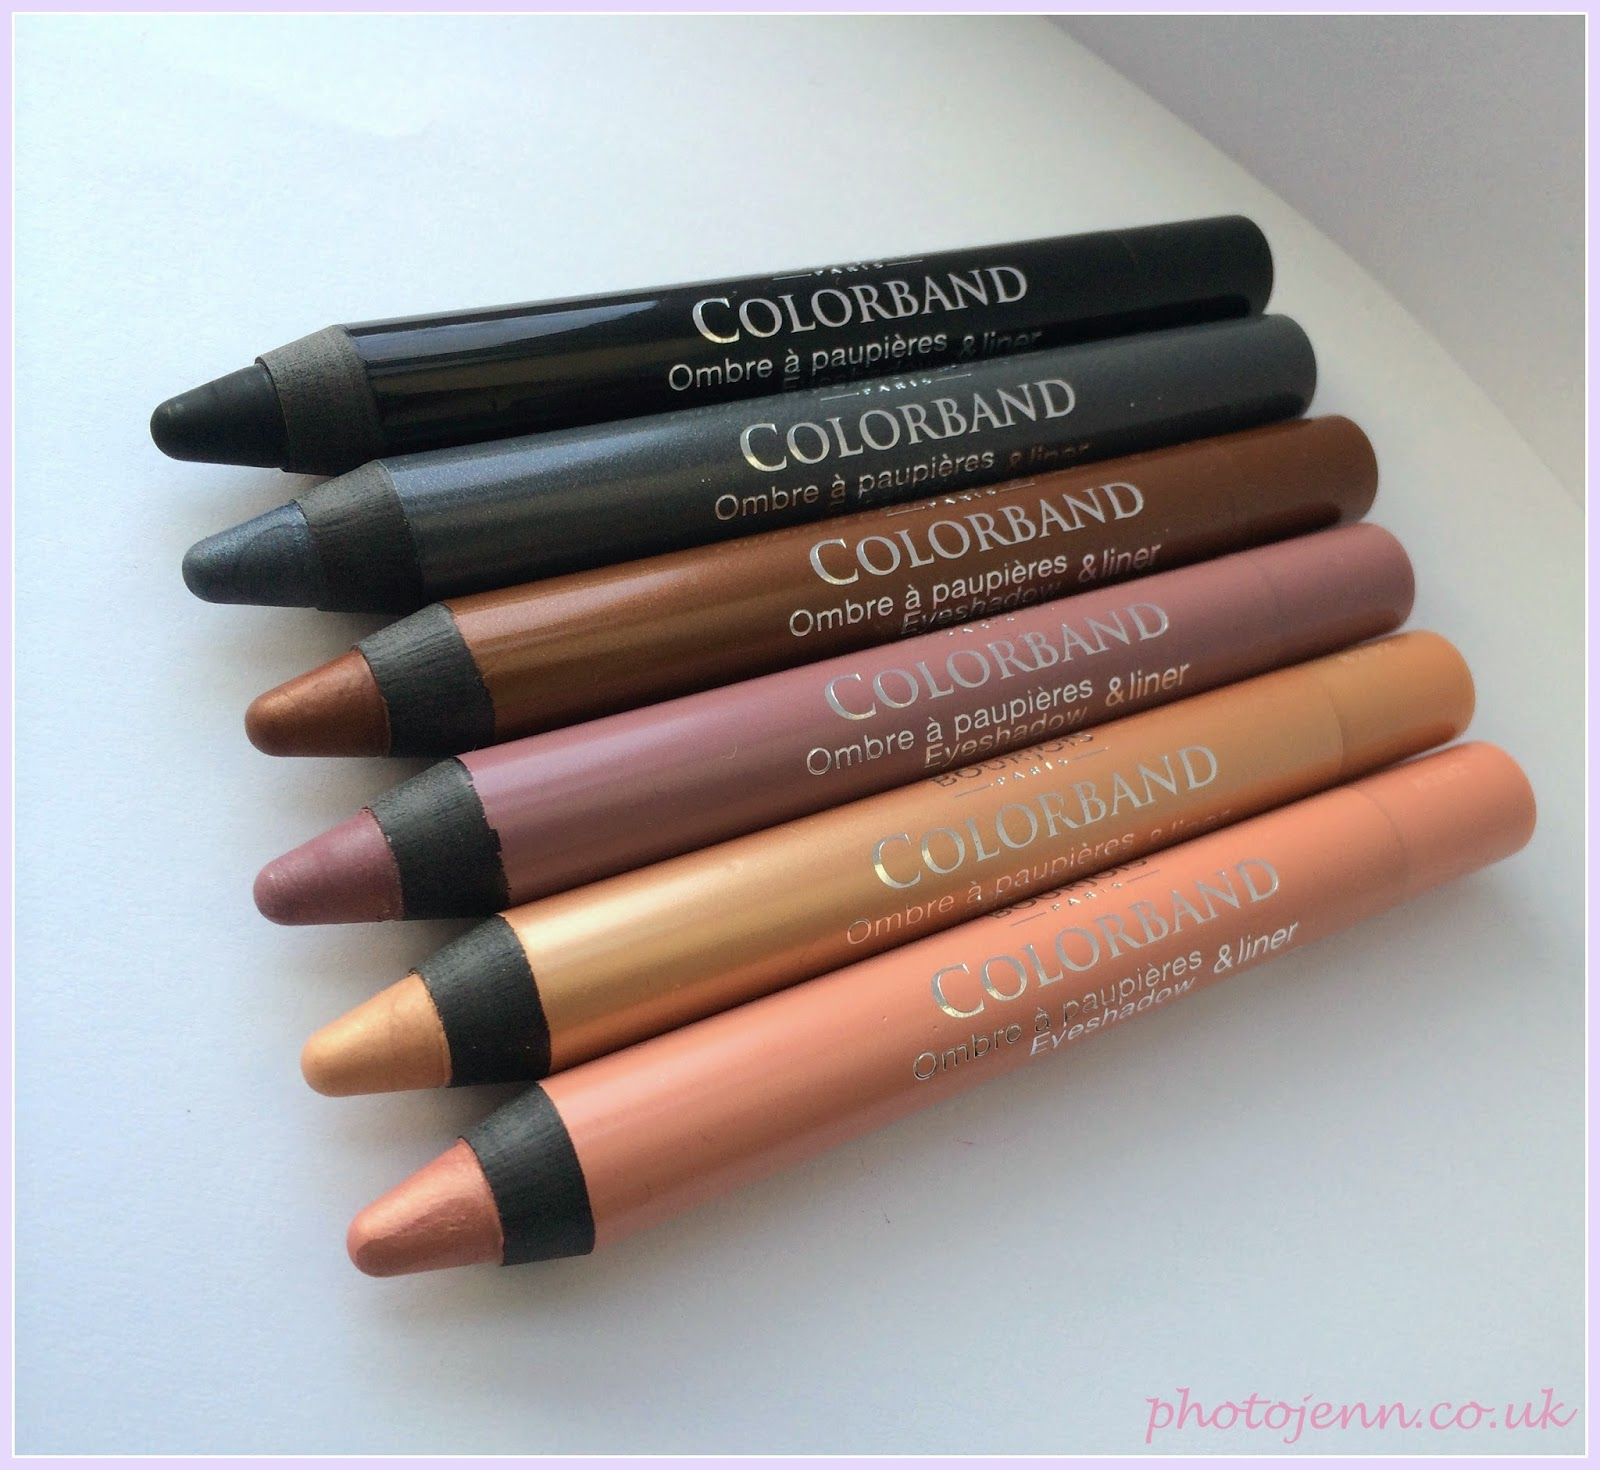 bourjois-colorband-crayons-review